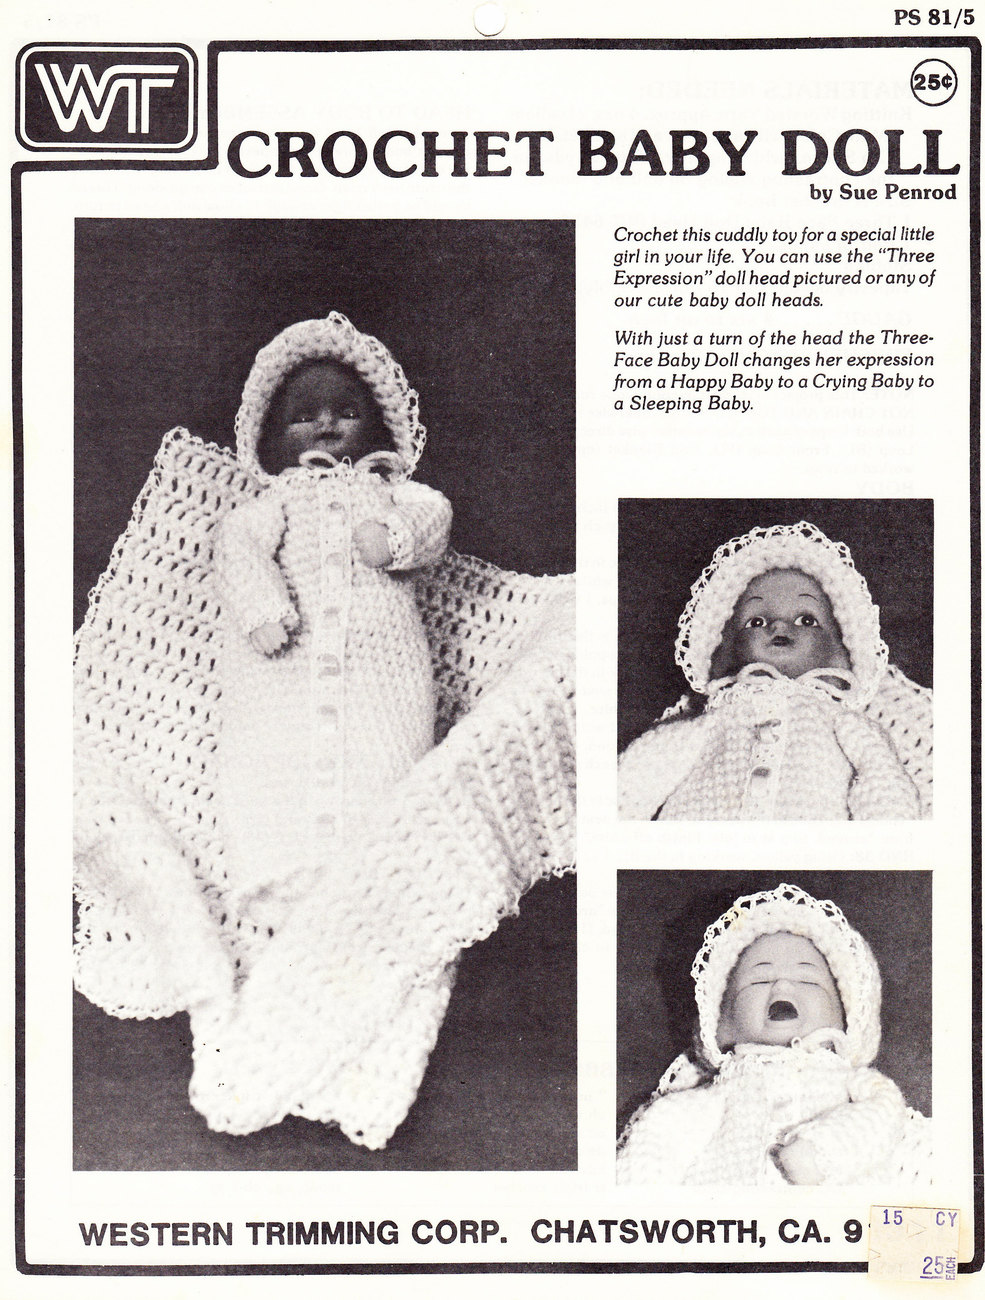 Primary image for CROCHET BABY DOLL INSTRUCTION SHEET